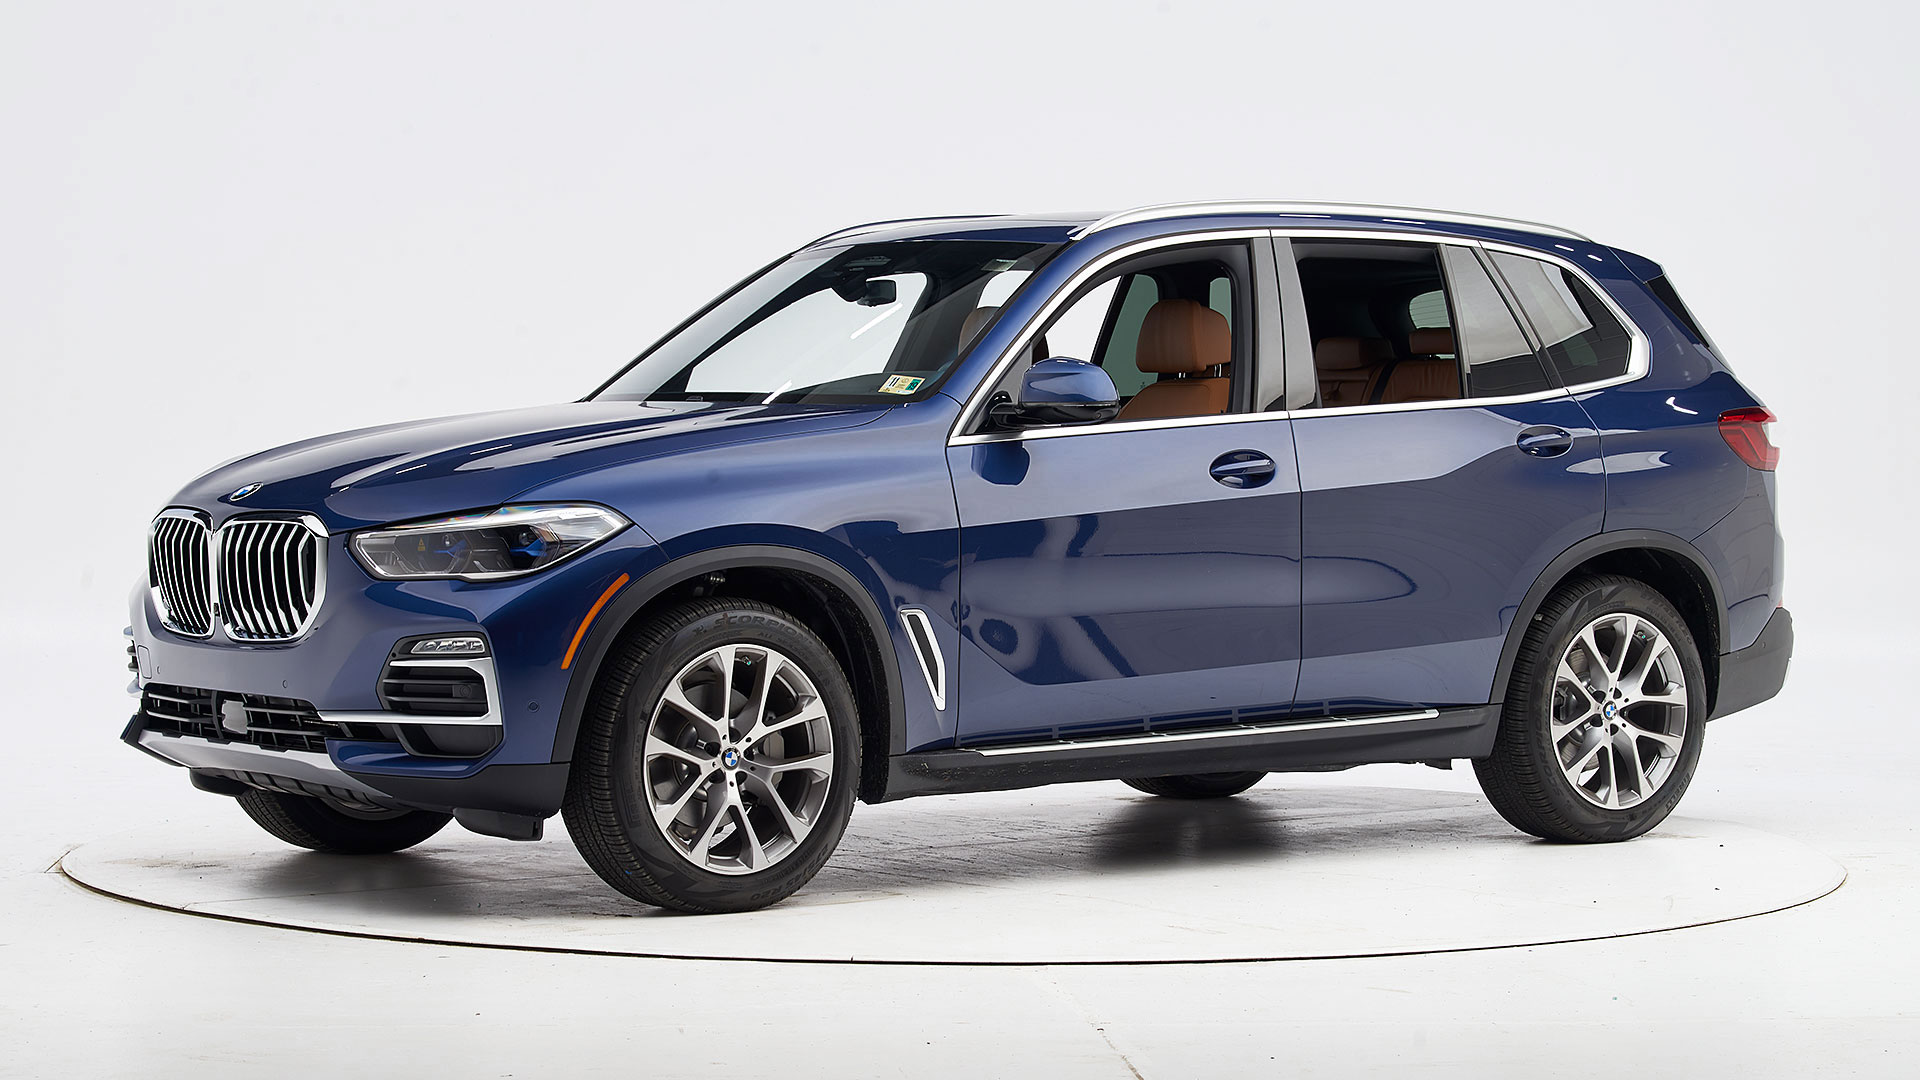 2019 BMW X5 4-door SUV